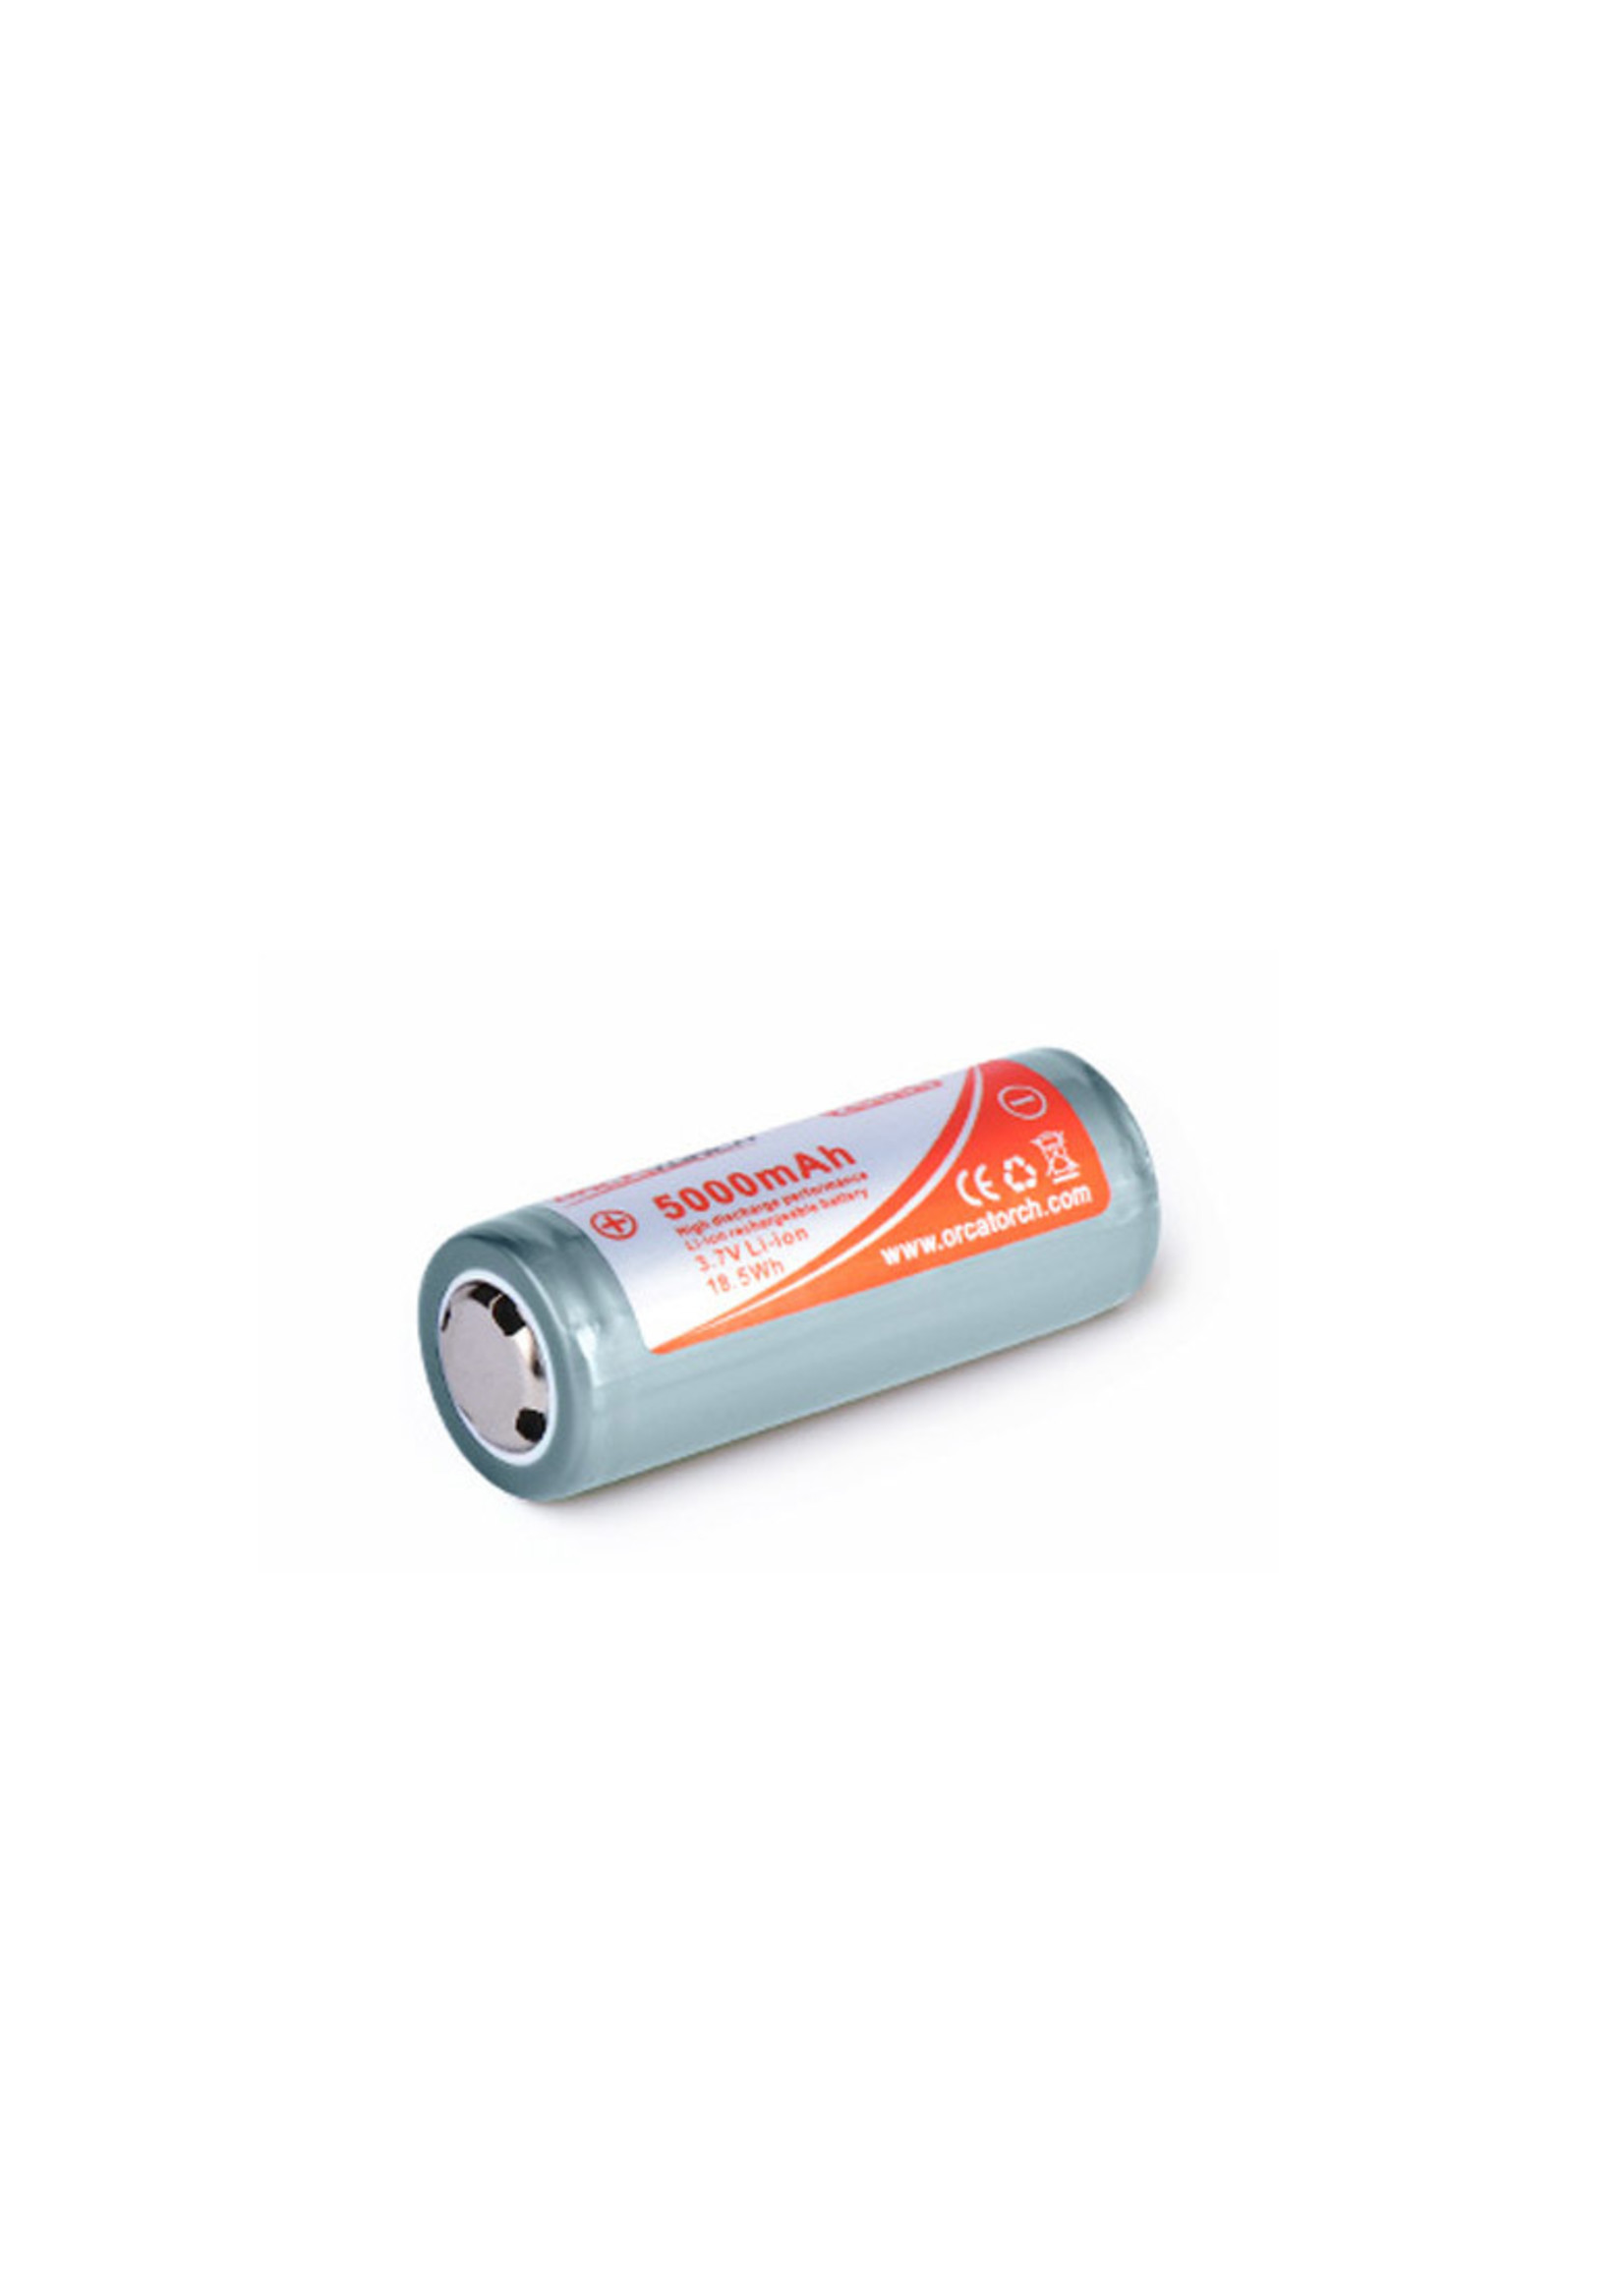 OrcaTorch OrcaTorch 26650 Rechargeable Battery